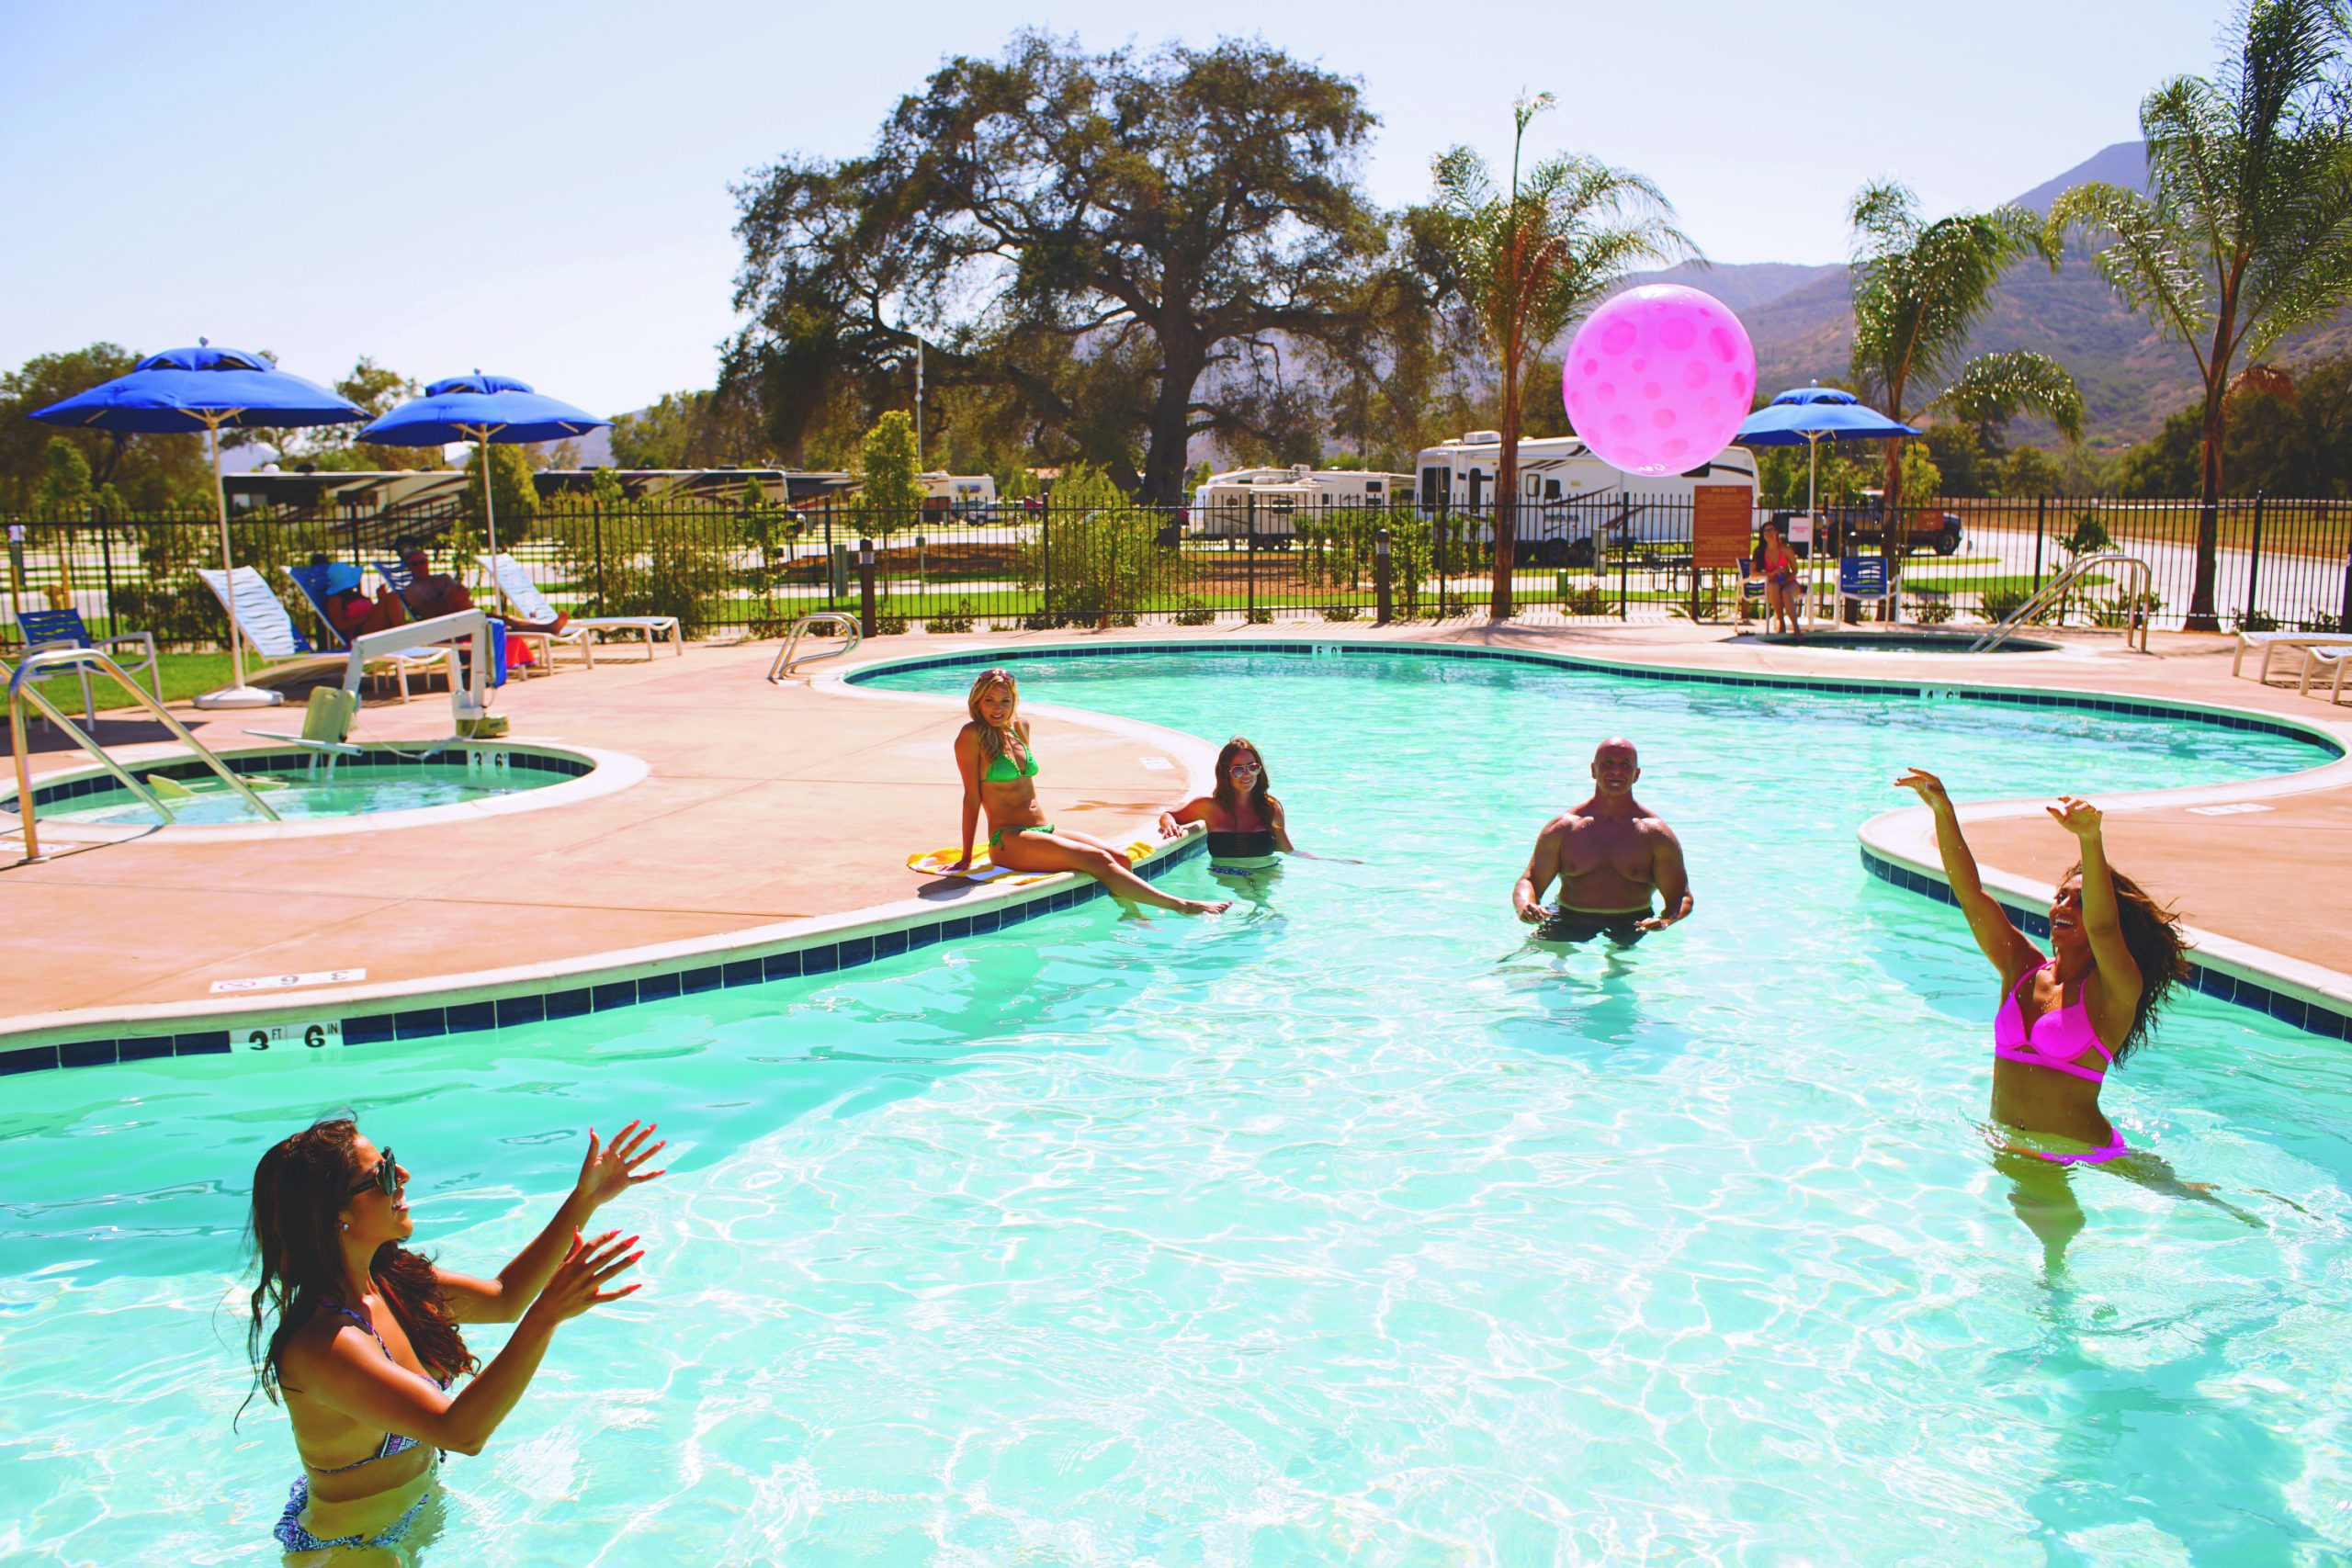 People playing in crystal clear community pool